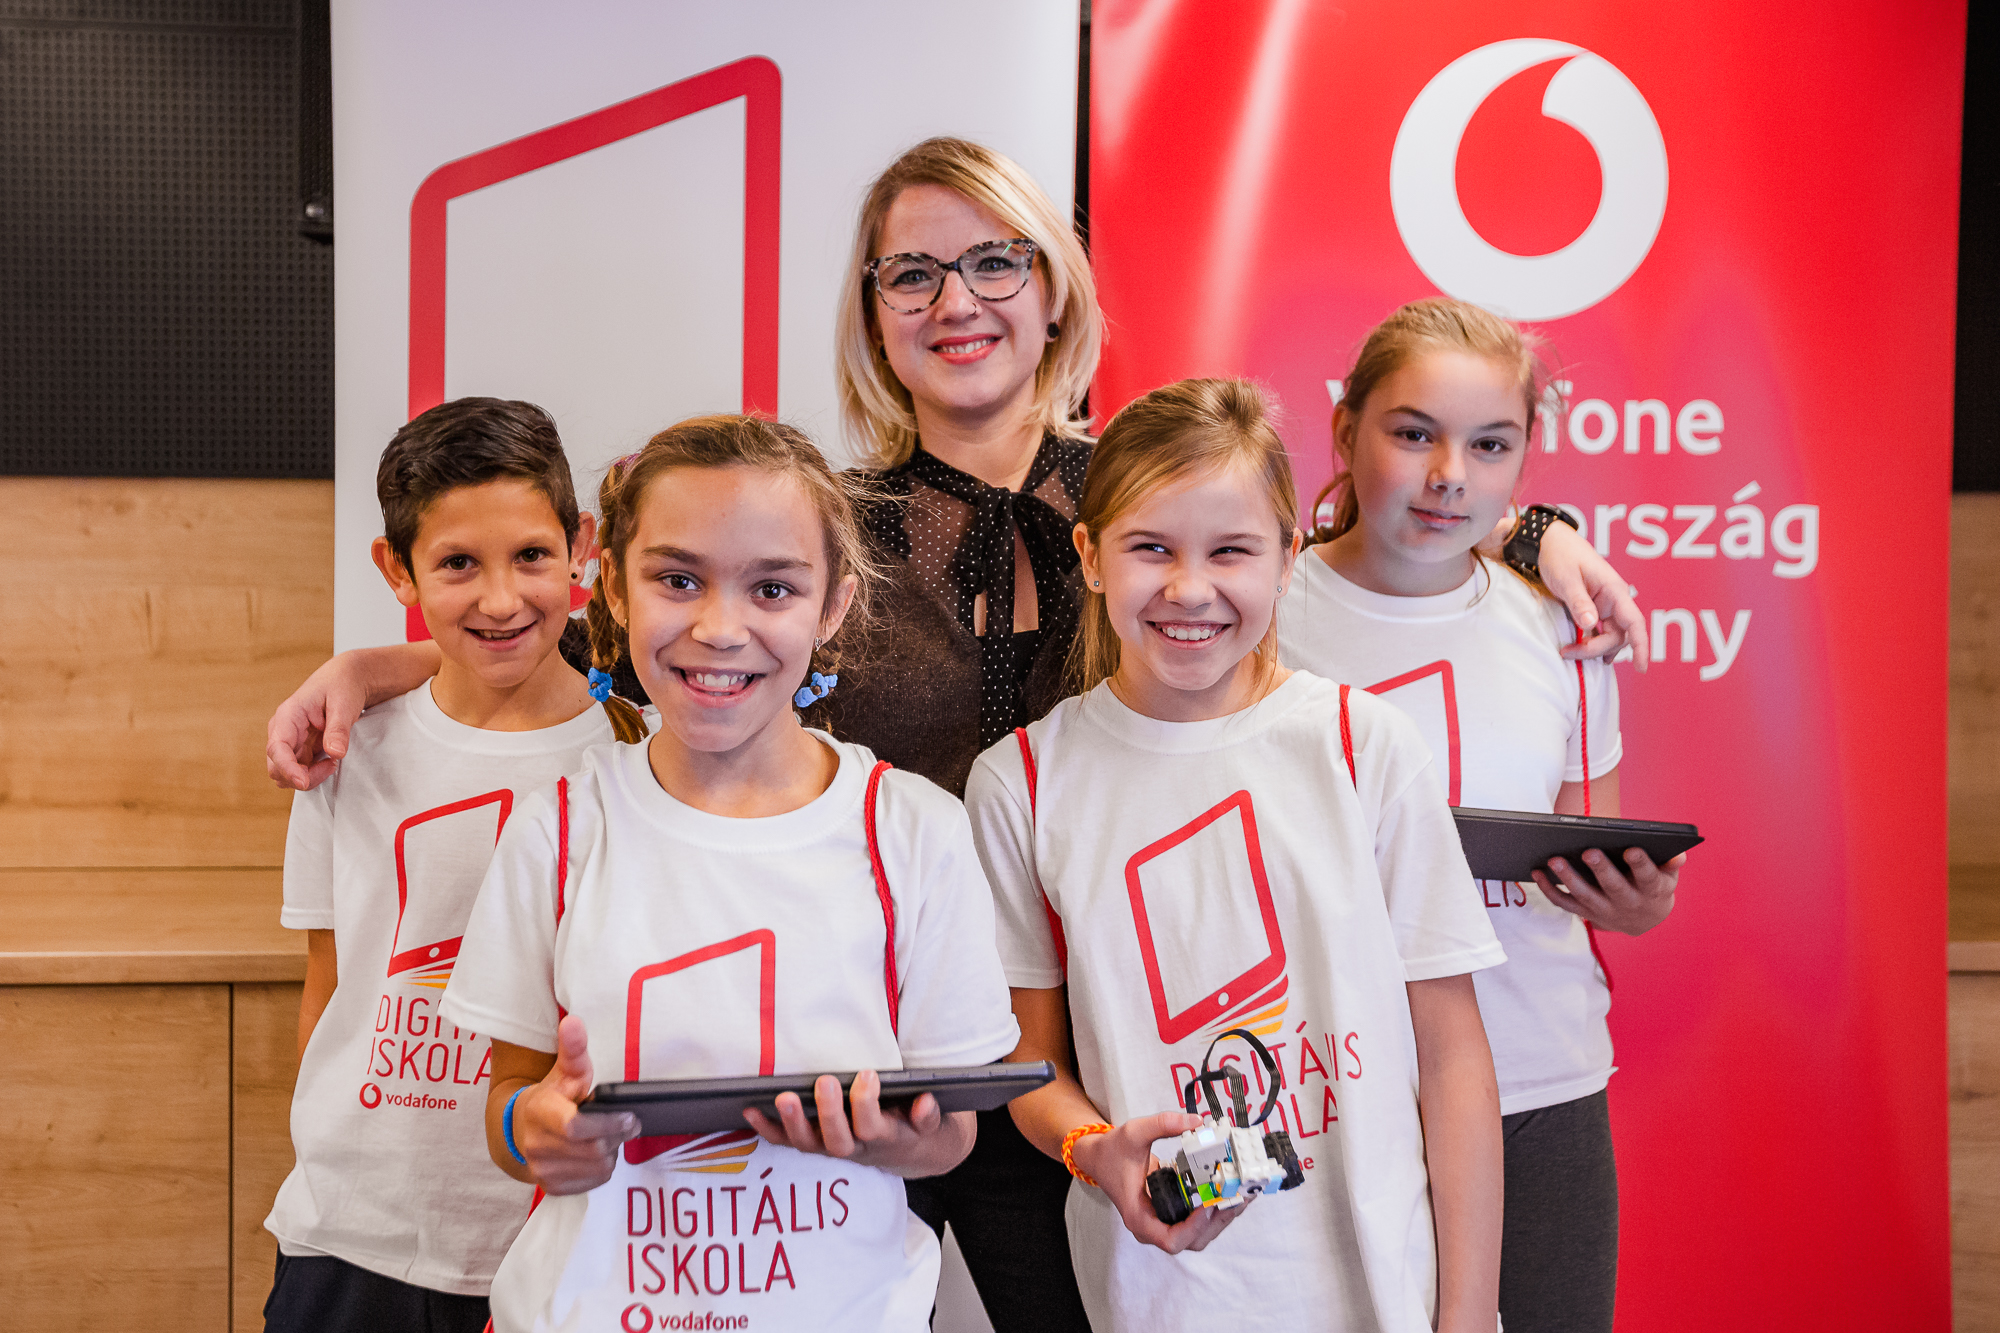 Vodafone invests EUR 20 mln to advance digital skills and education worldwide